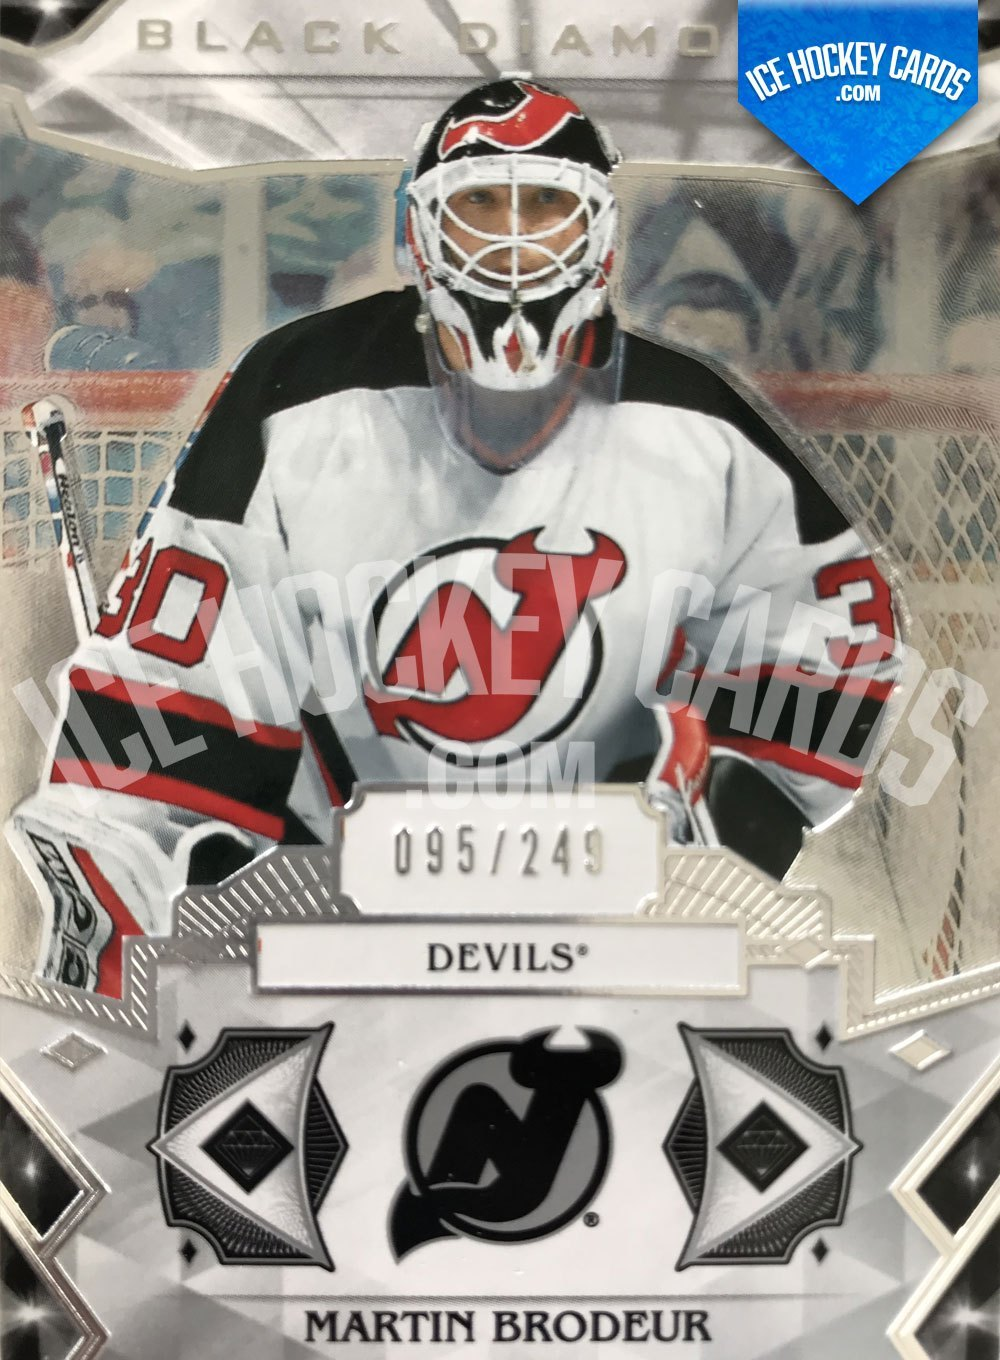 Upper Deck - Black Diamond 19-20 - Martin Brodeur Base Card